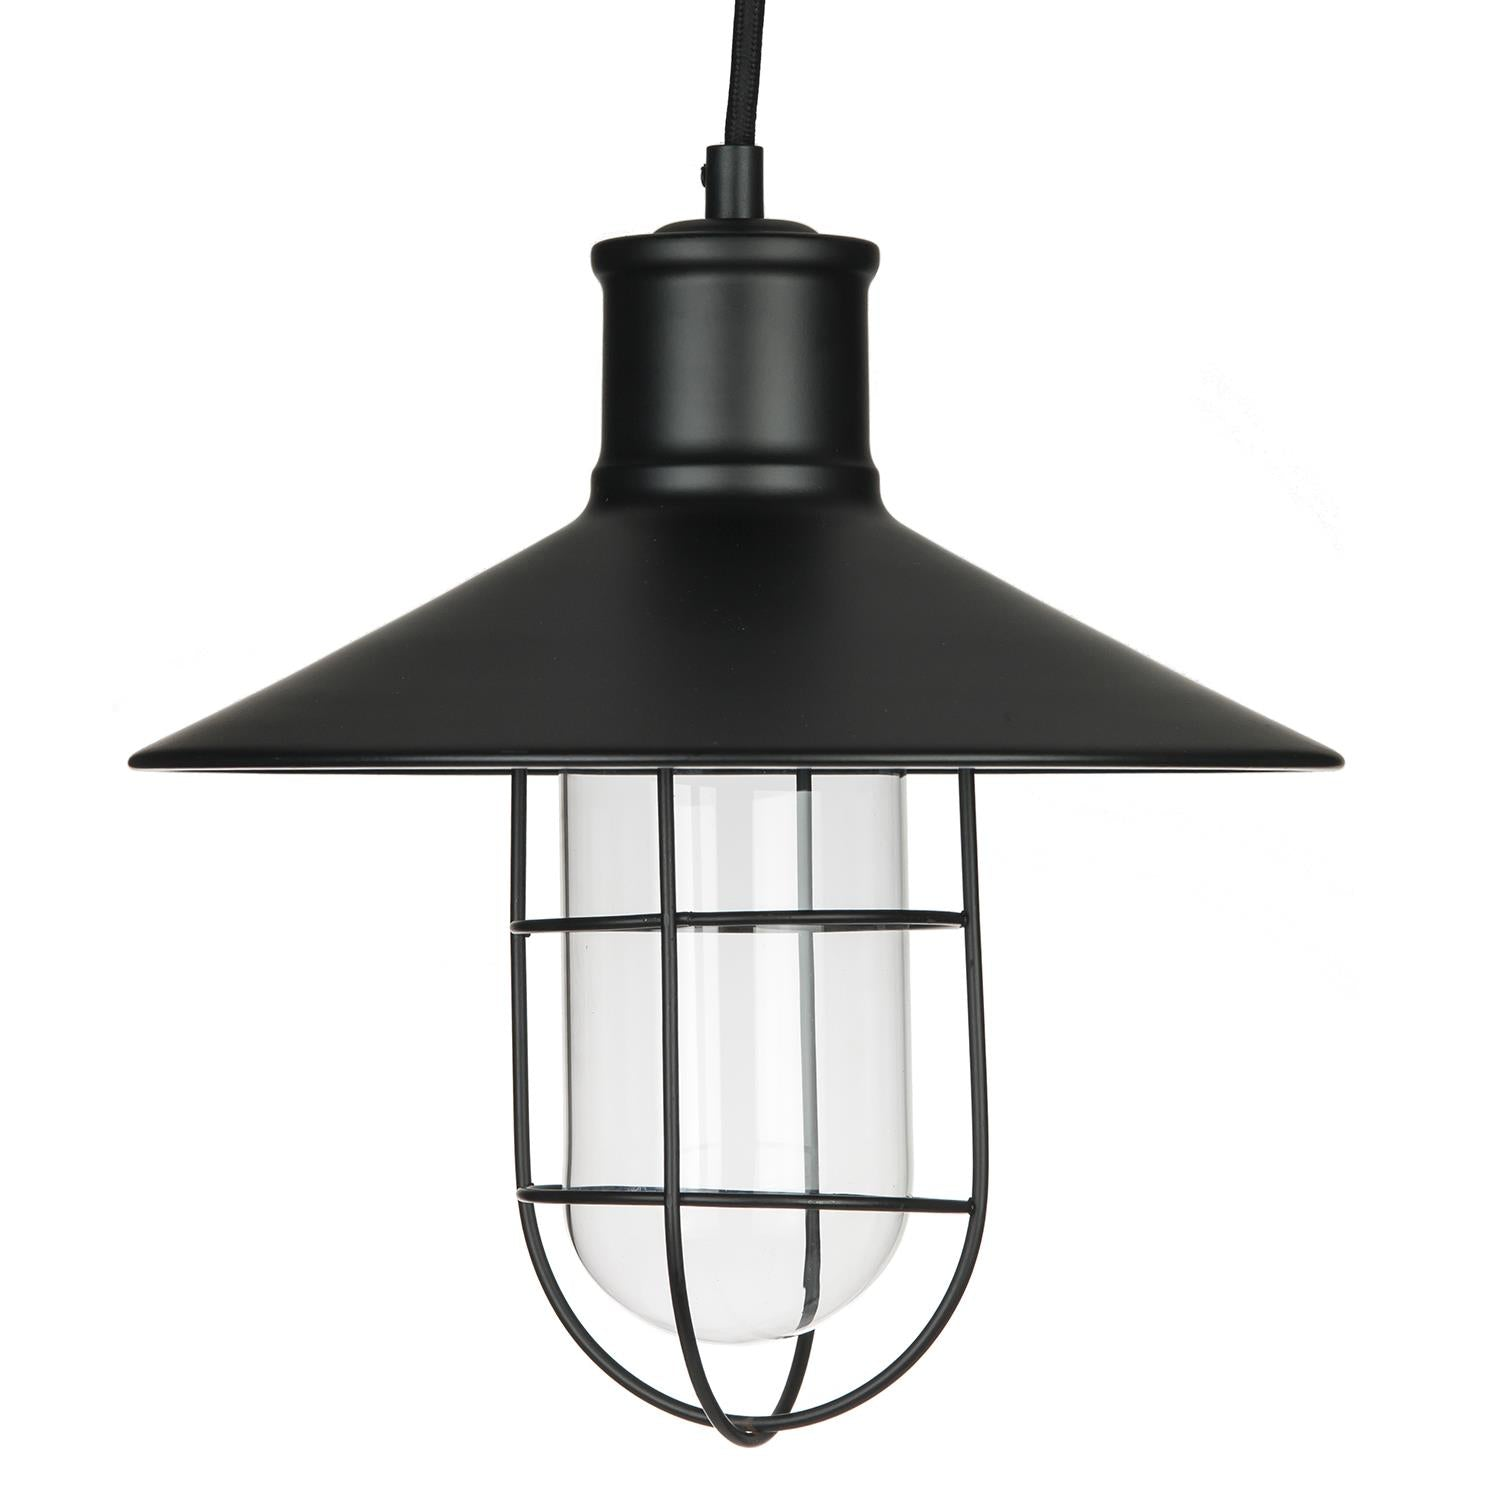 SUNLITE 07005-SU E26 Canopy Cage Oil Black Pendant Light Fixture